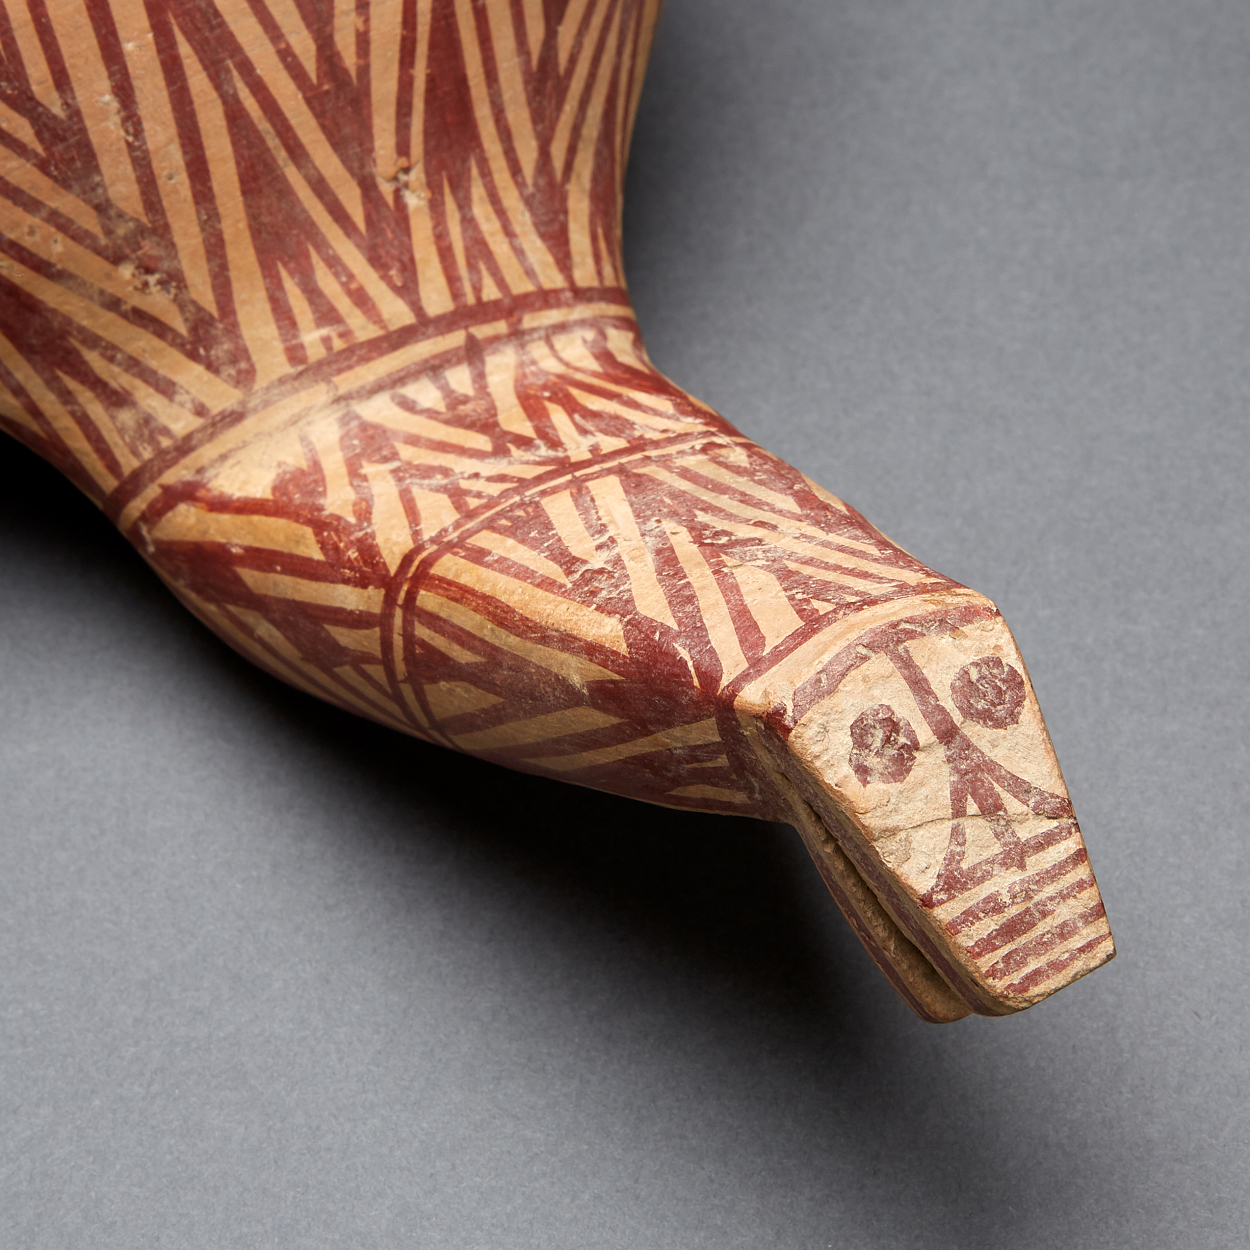 A Neolithic Painted Pottery Figure of a Bird